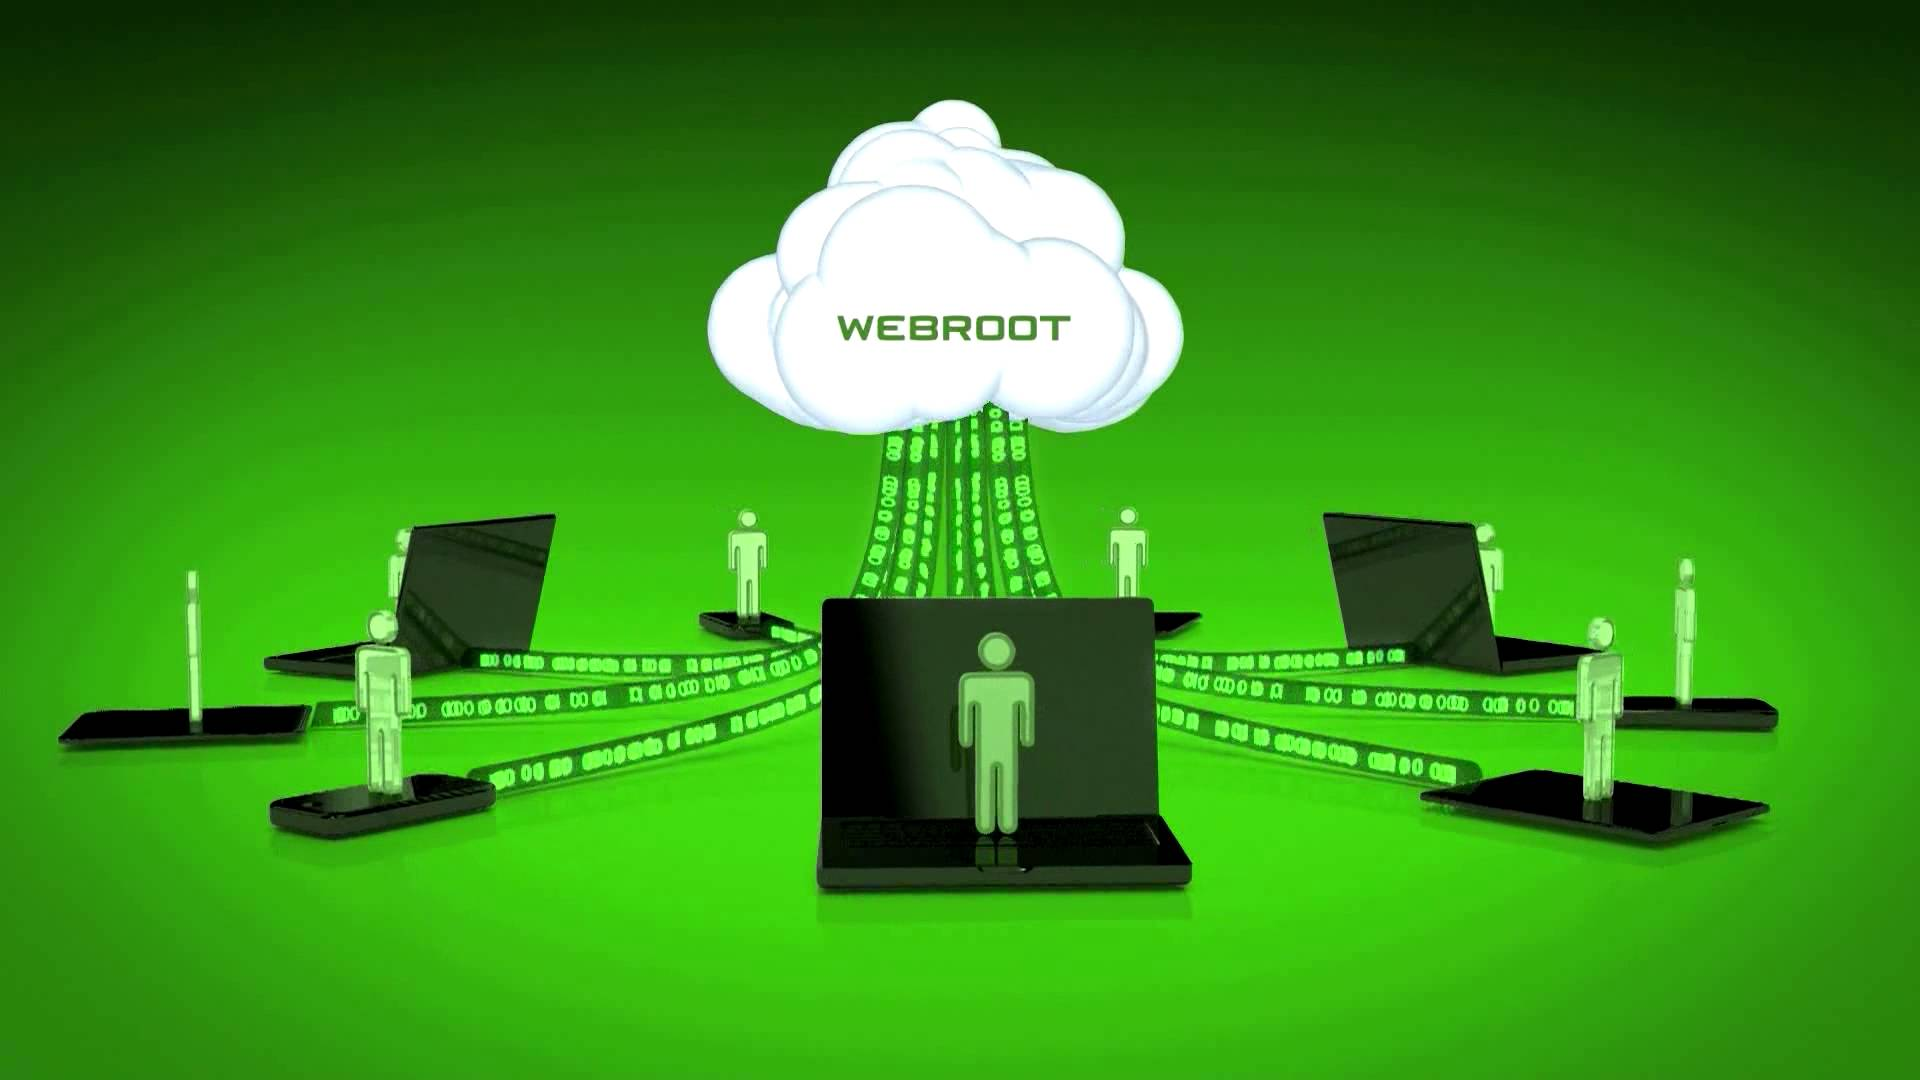 Webroot.com/safe – download and install webroot with keycode